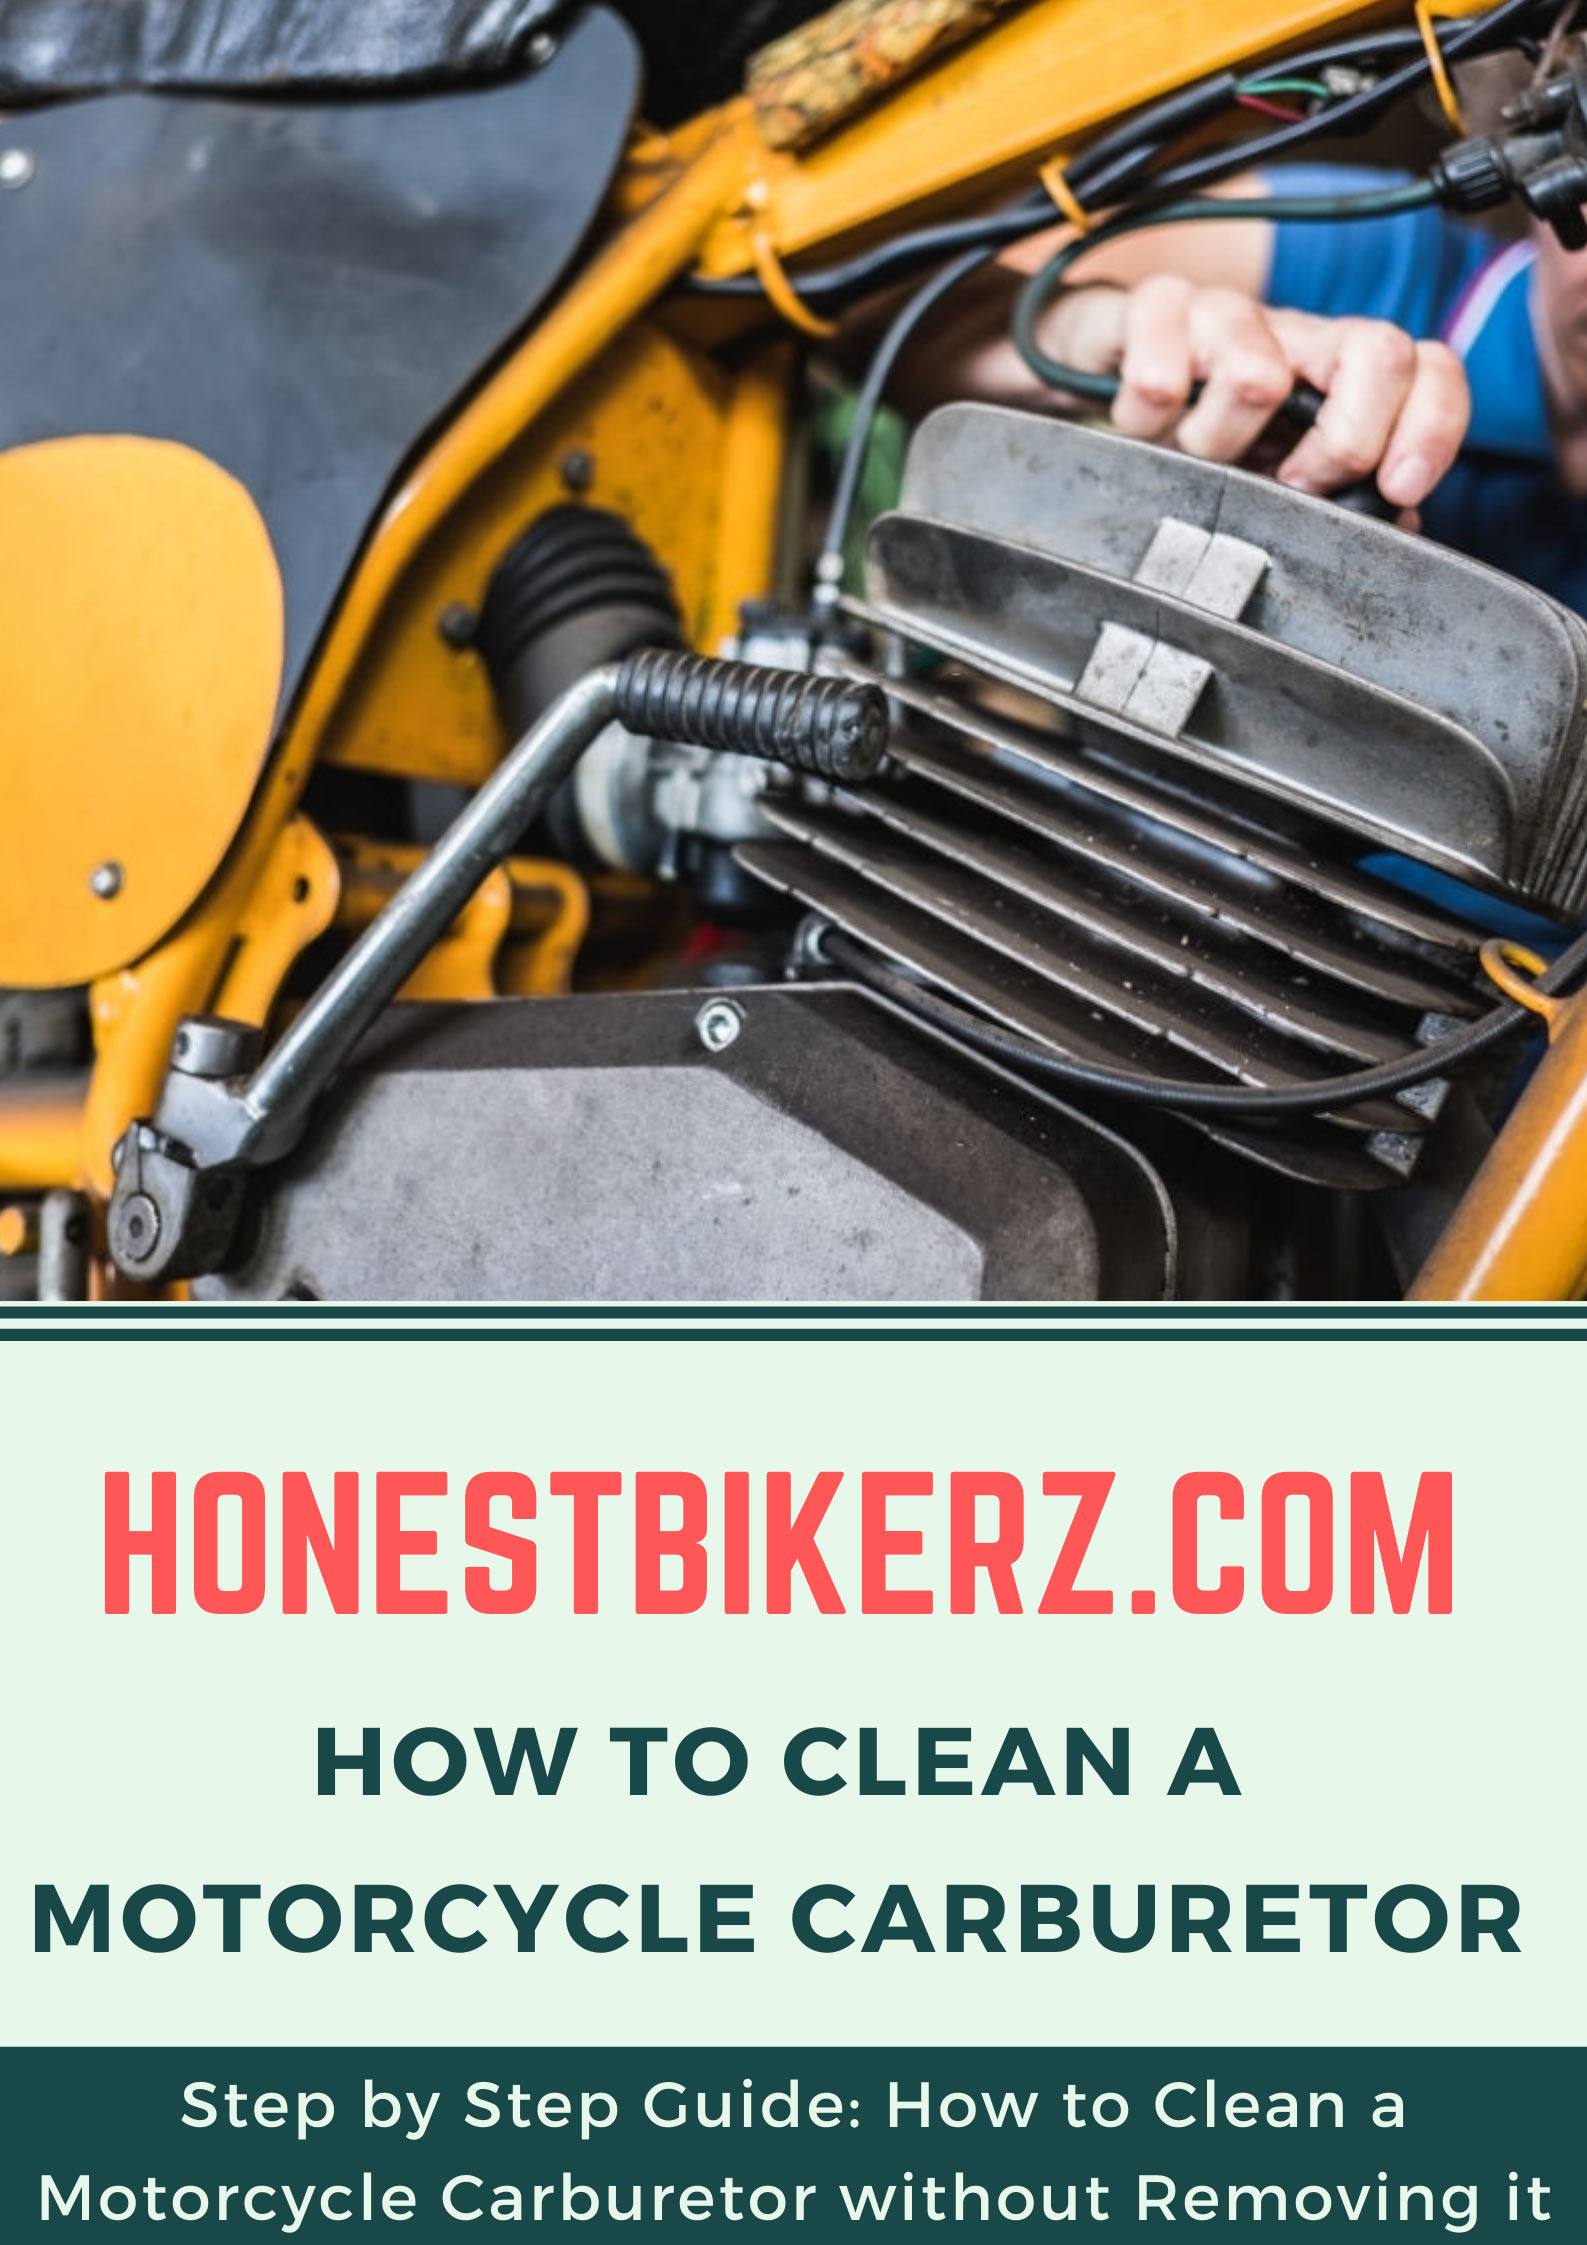 How to clean a motorcycle carburetor without removing it